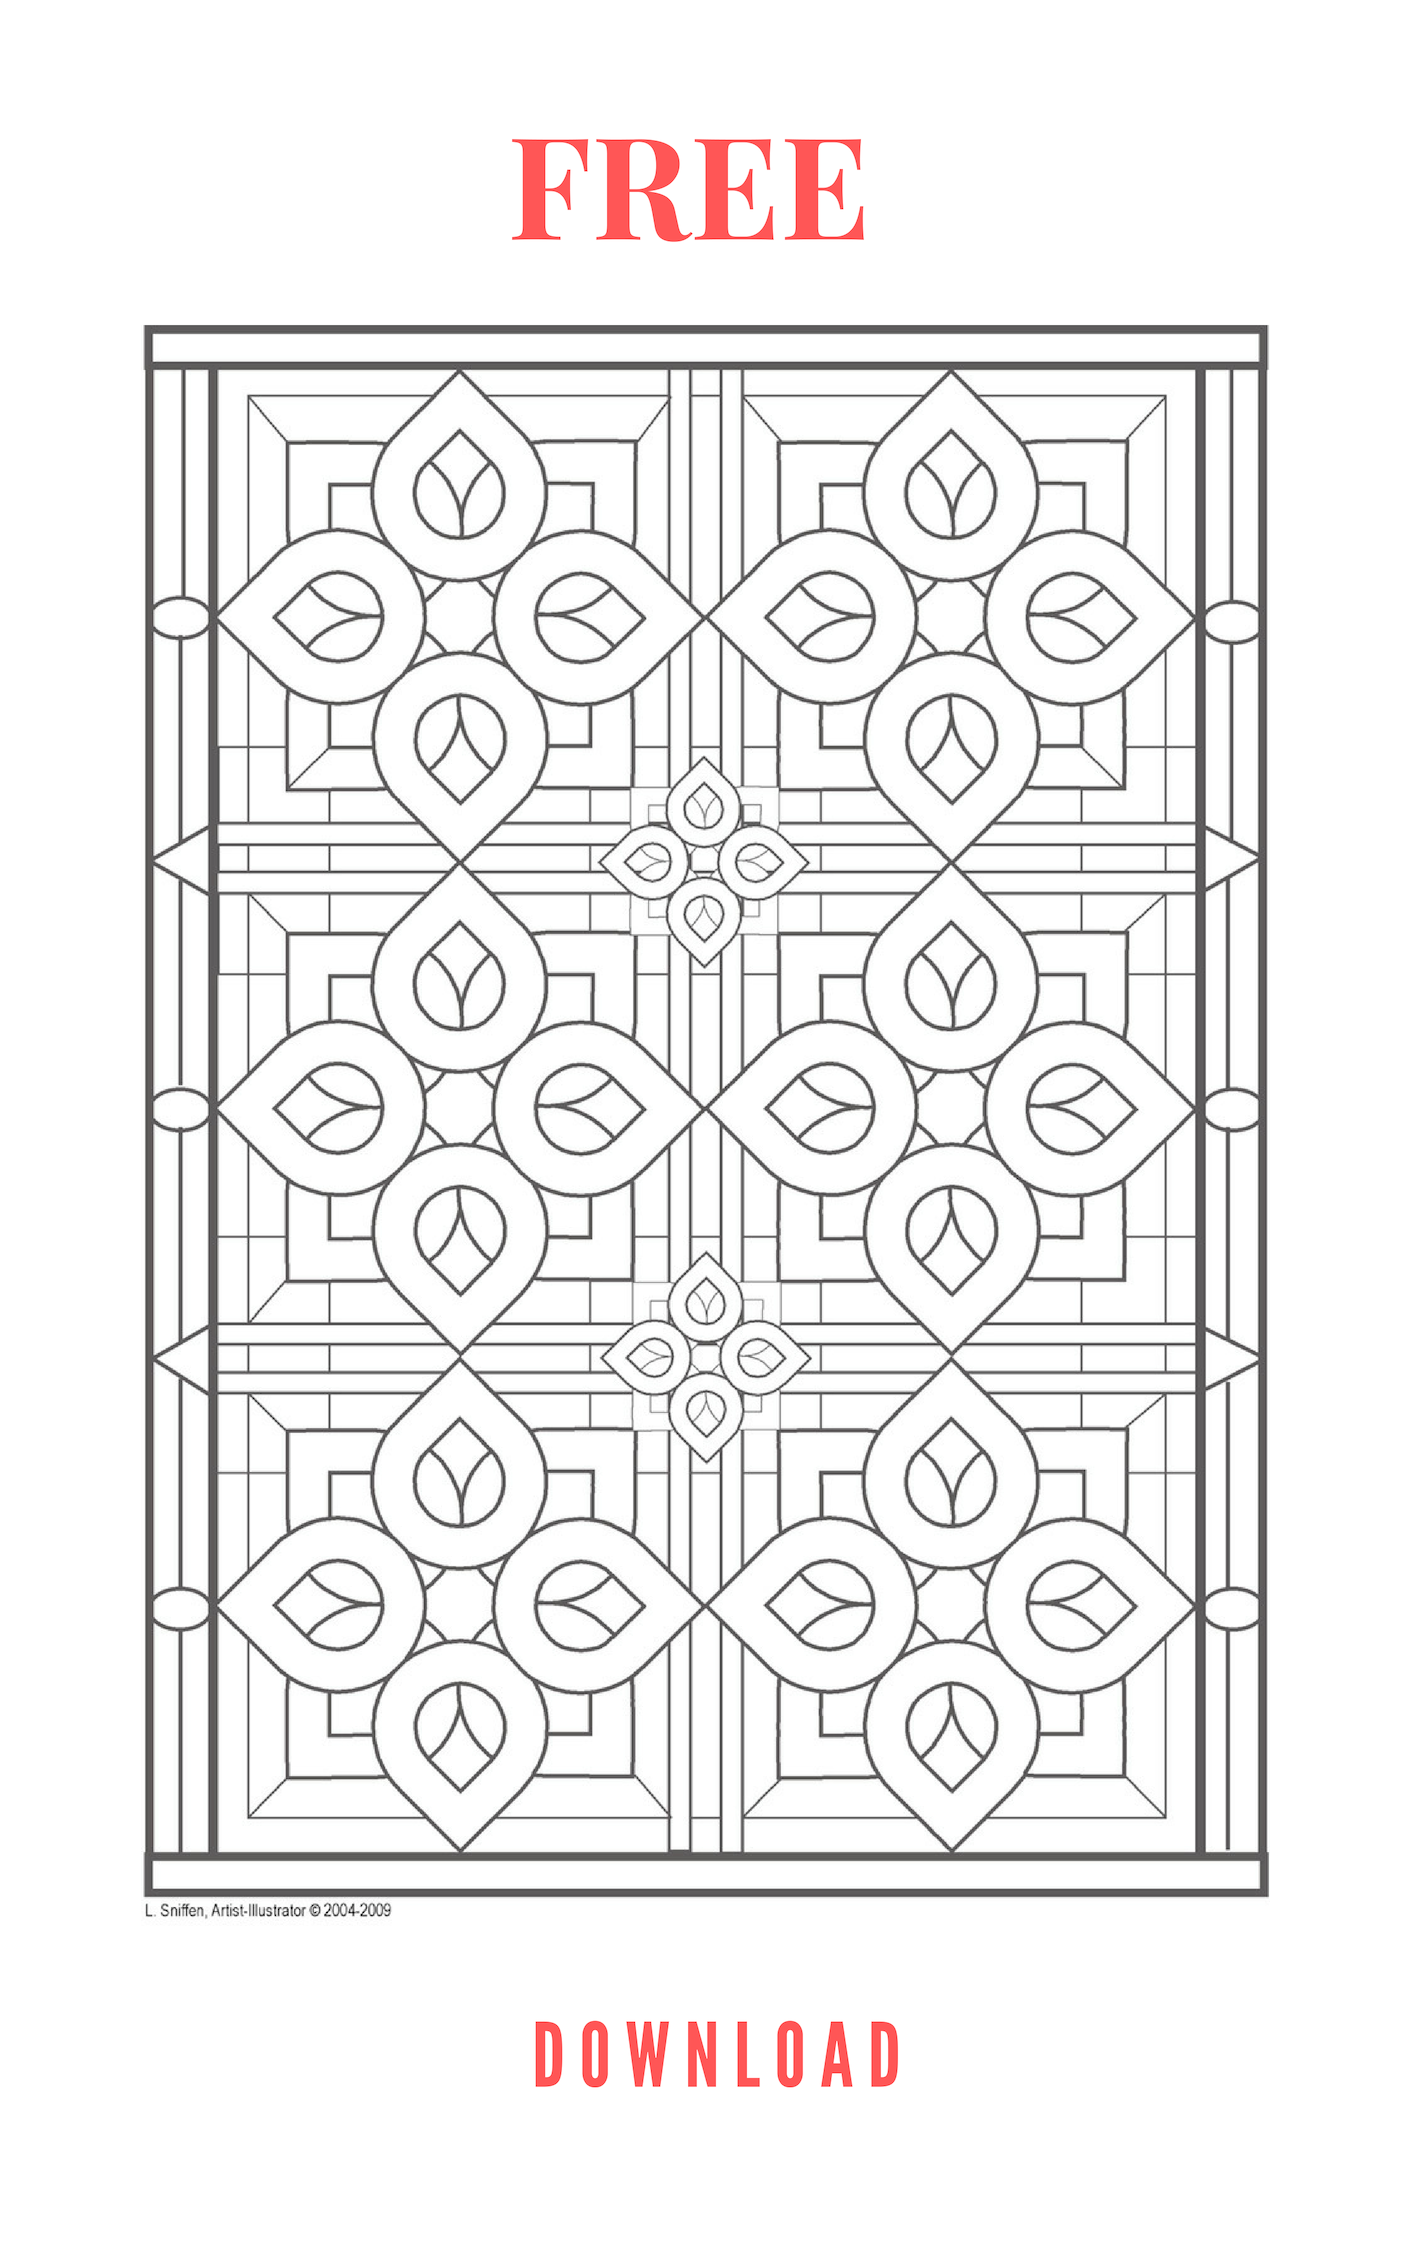 Free Coloring Pages Easy Coloring Pages Coloring Pages Free Coloring Pages [ 2250 x 1410 Pixel ]